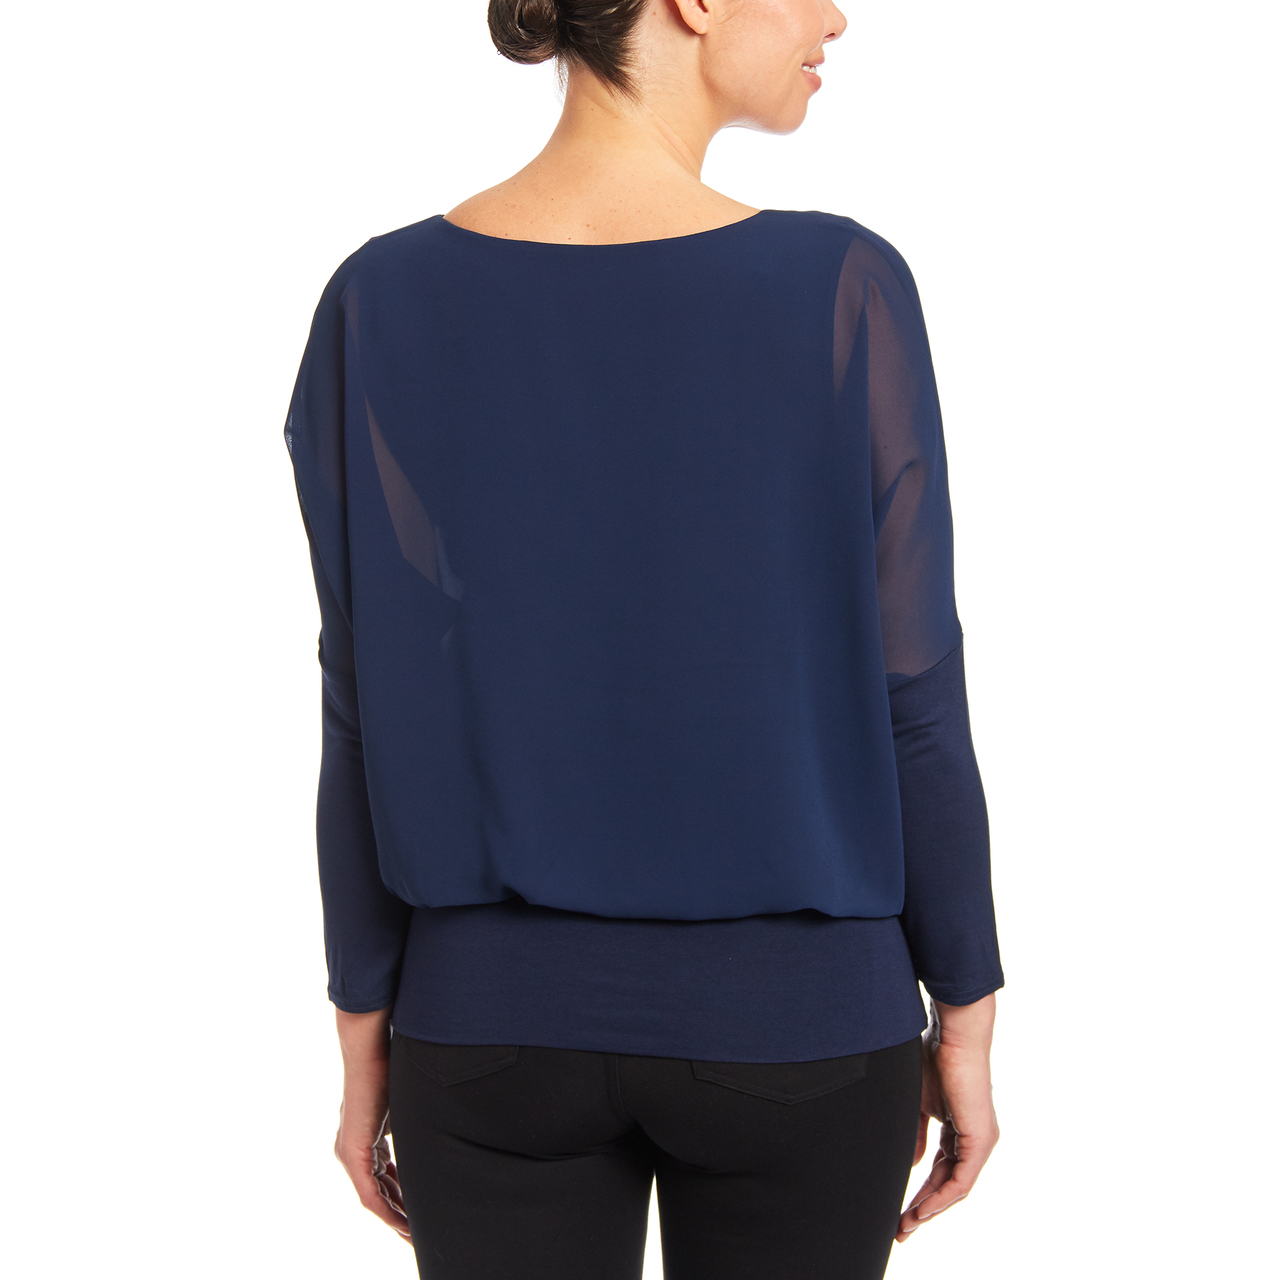 Dolman Long Sleeve Blouse in Navy Yard